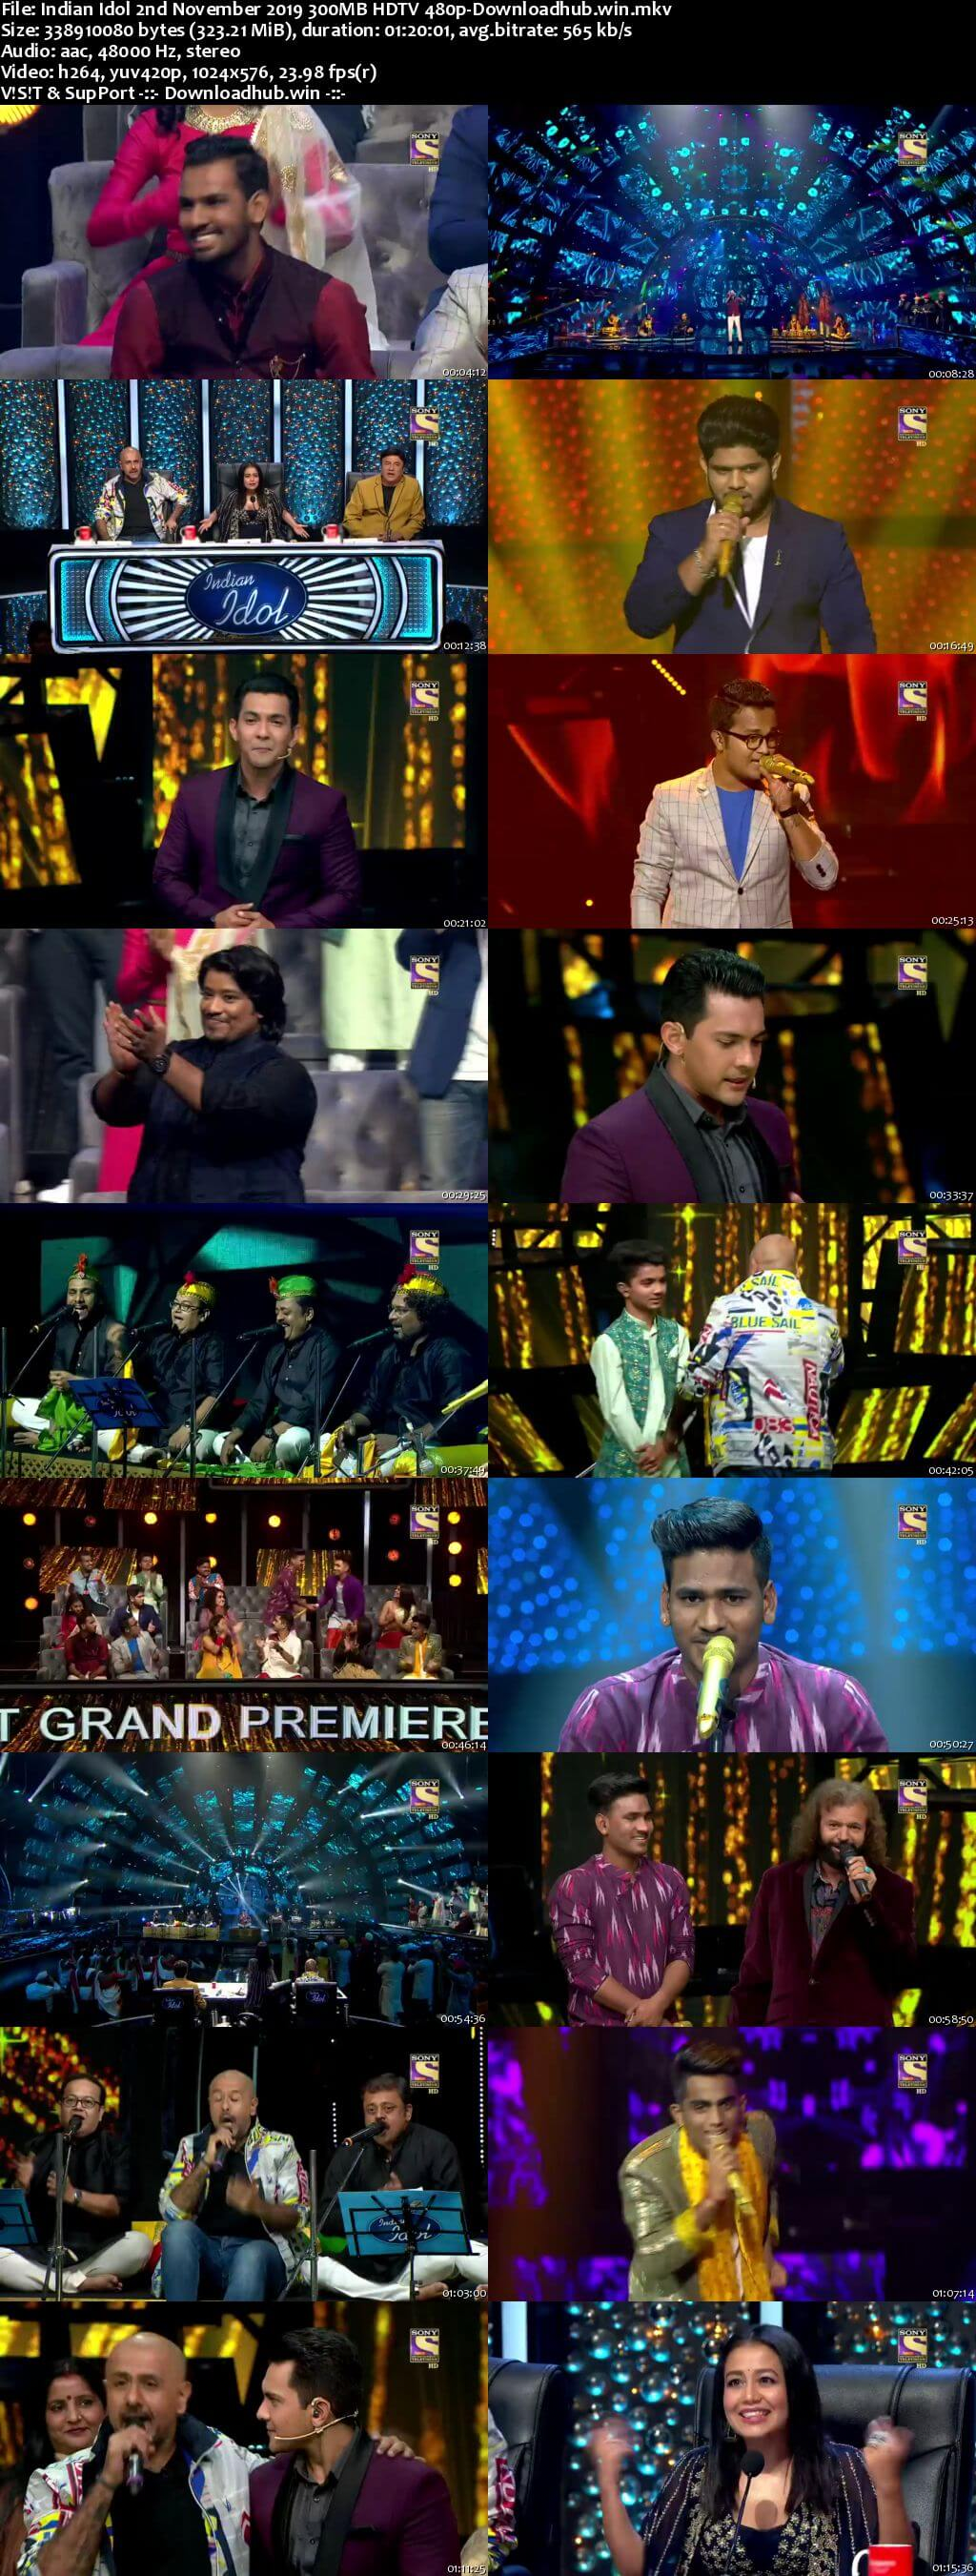 Indian Idol 02 November 2019 Episode 07 HDTV 480p